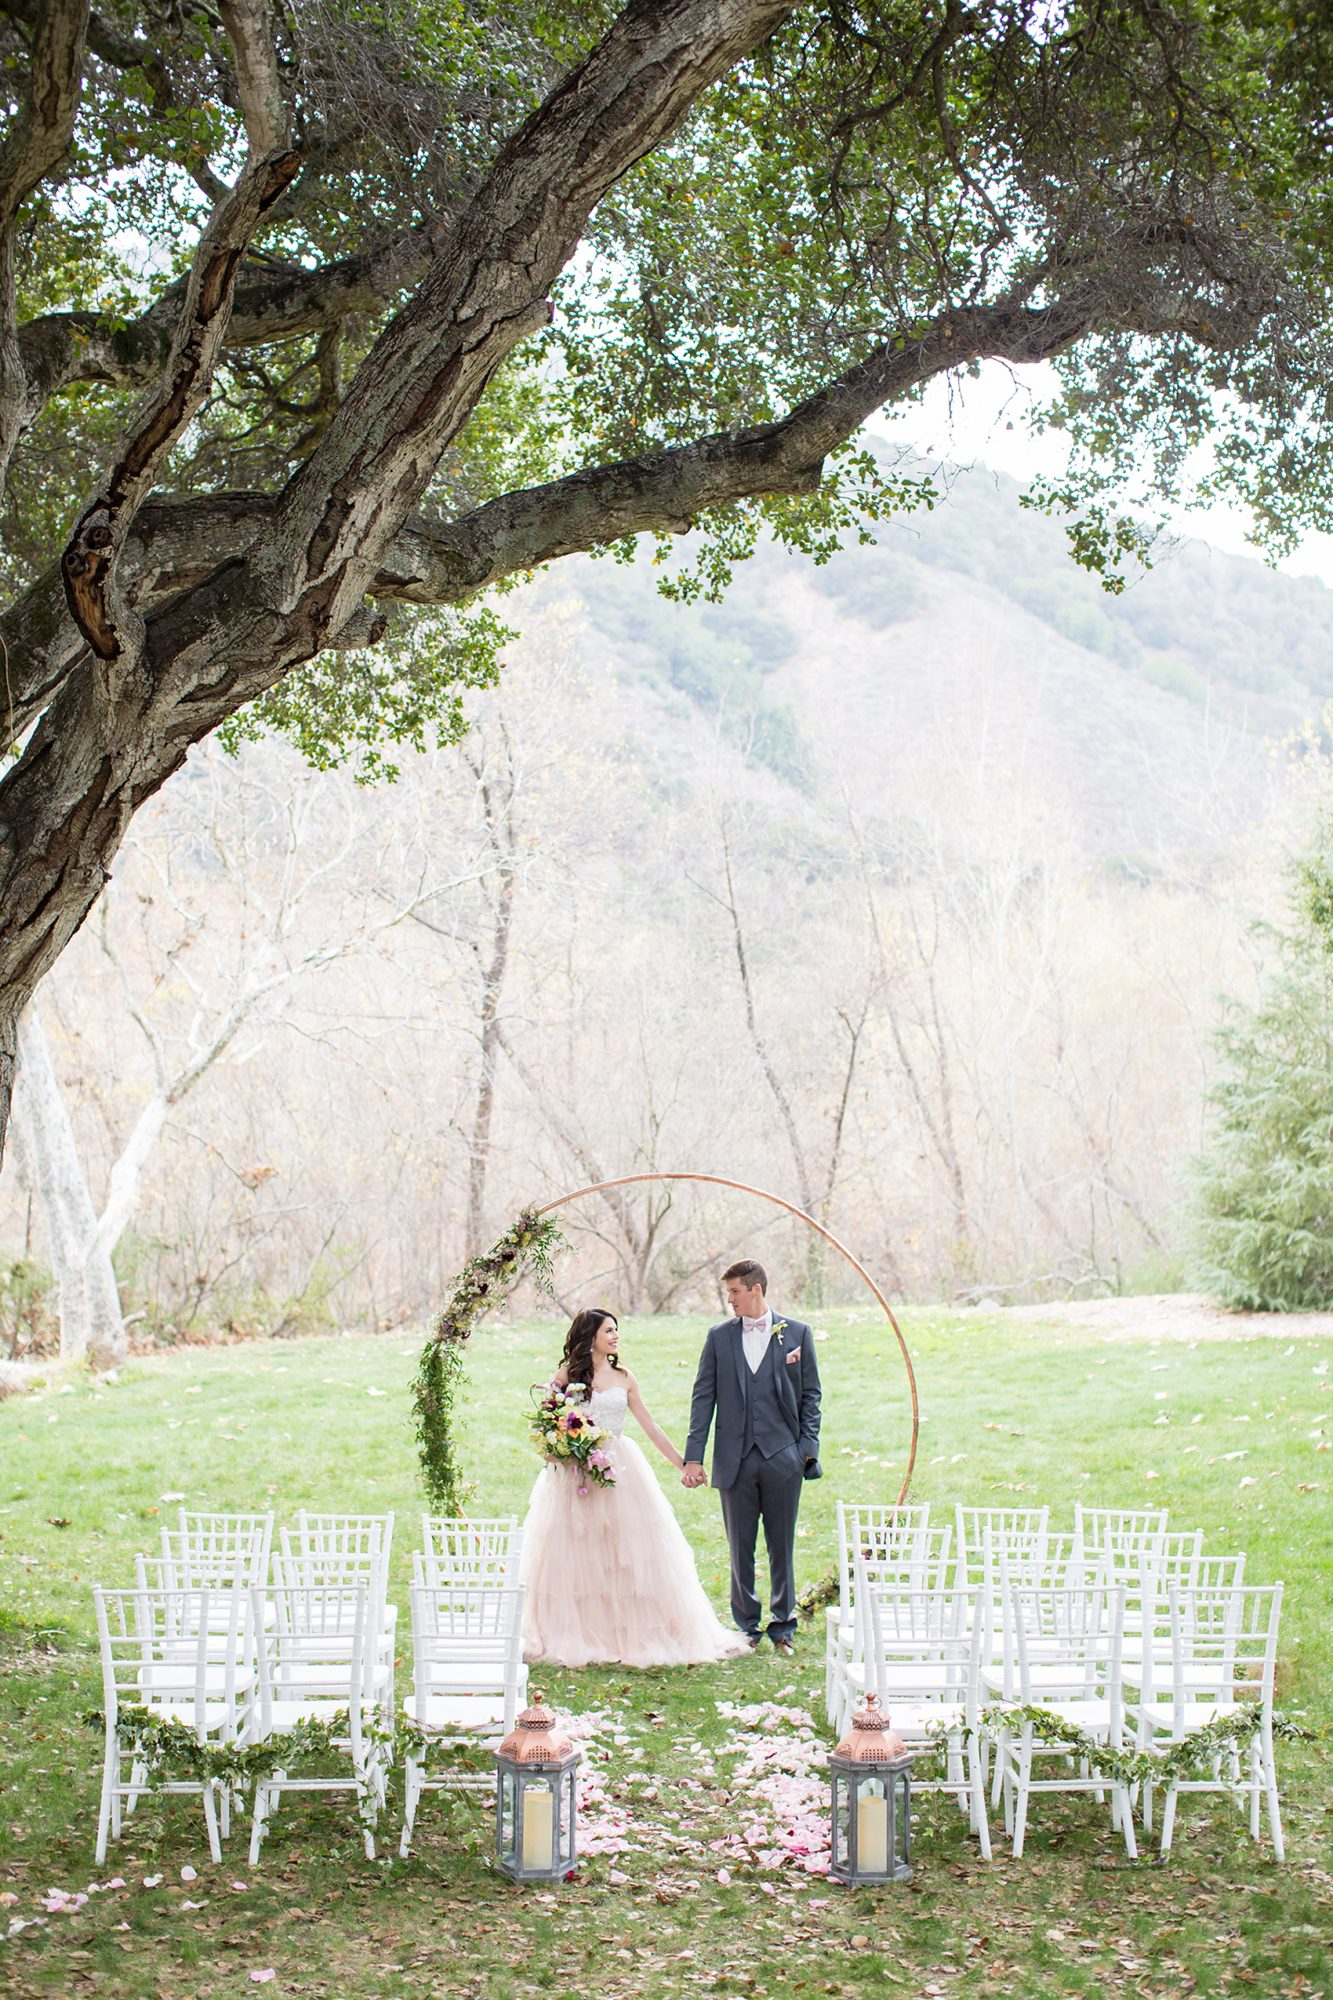 ceremony aisle with circular arch